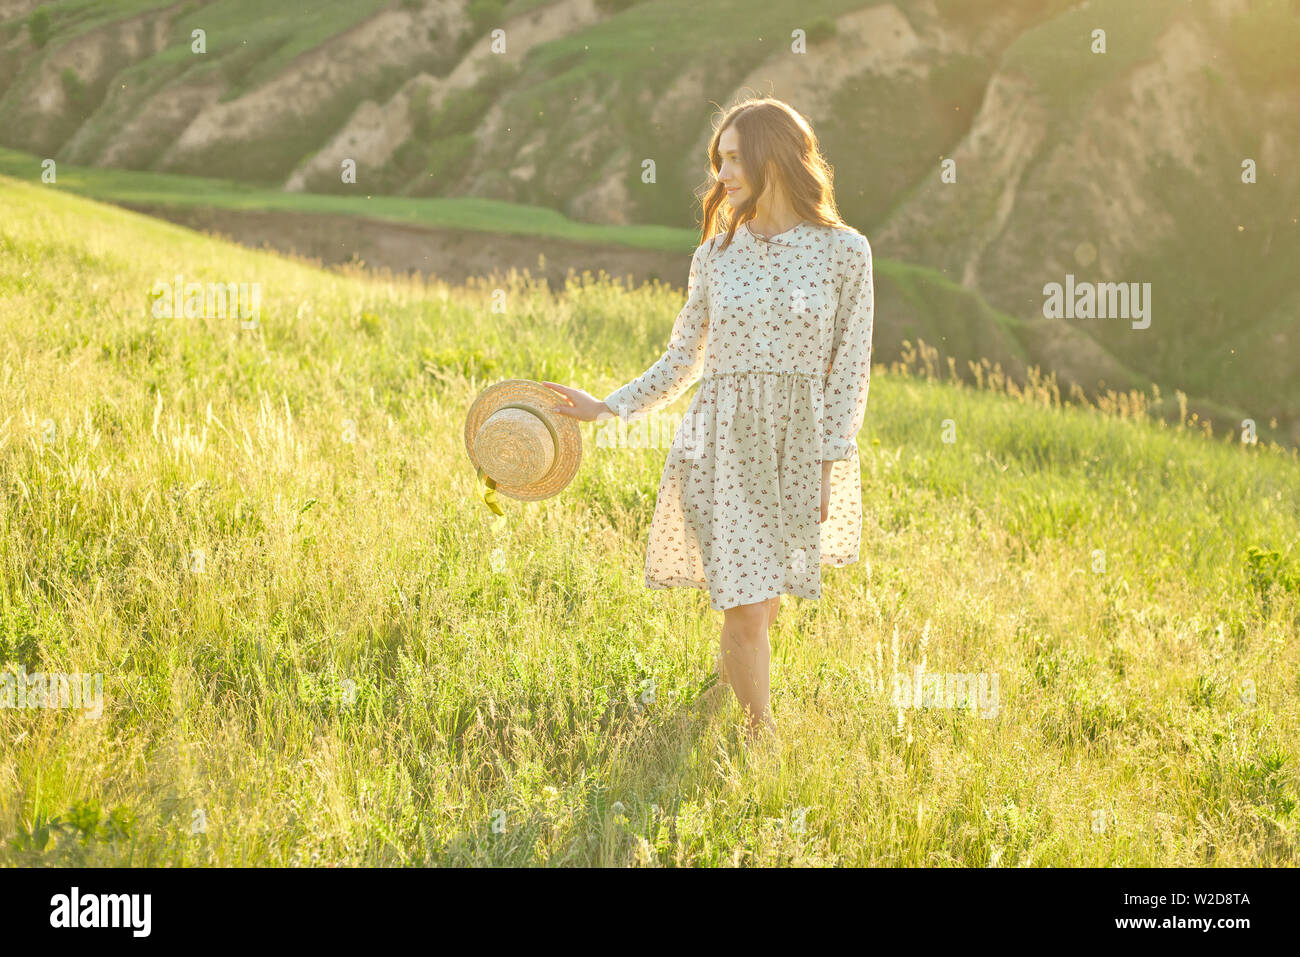 Beautiful girl in a summer sundress walks through the mountains in her hands holding a straw hat enjoying the rays of the sunset - Stock Image